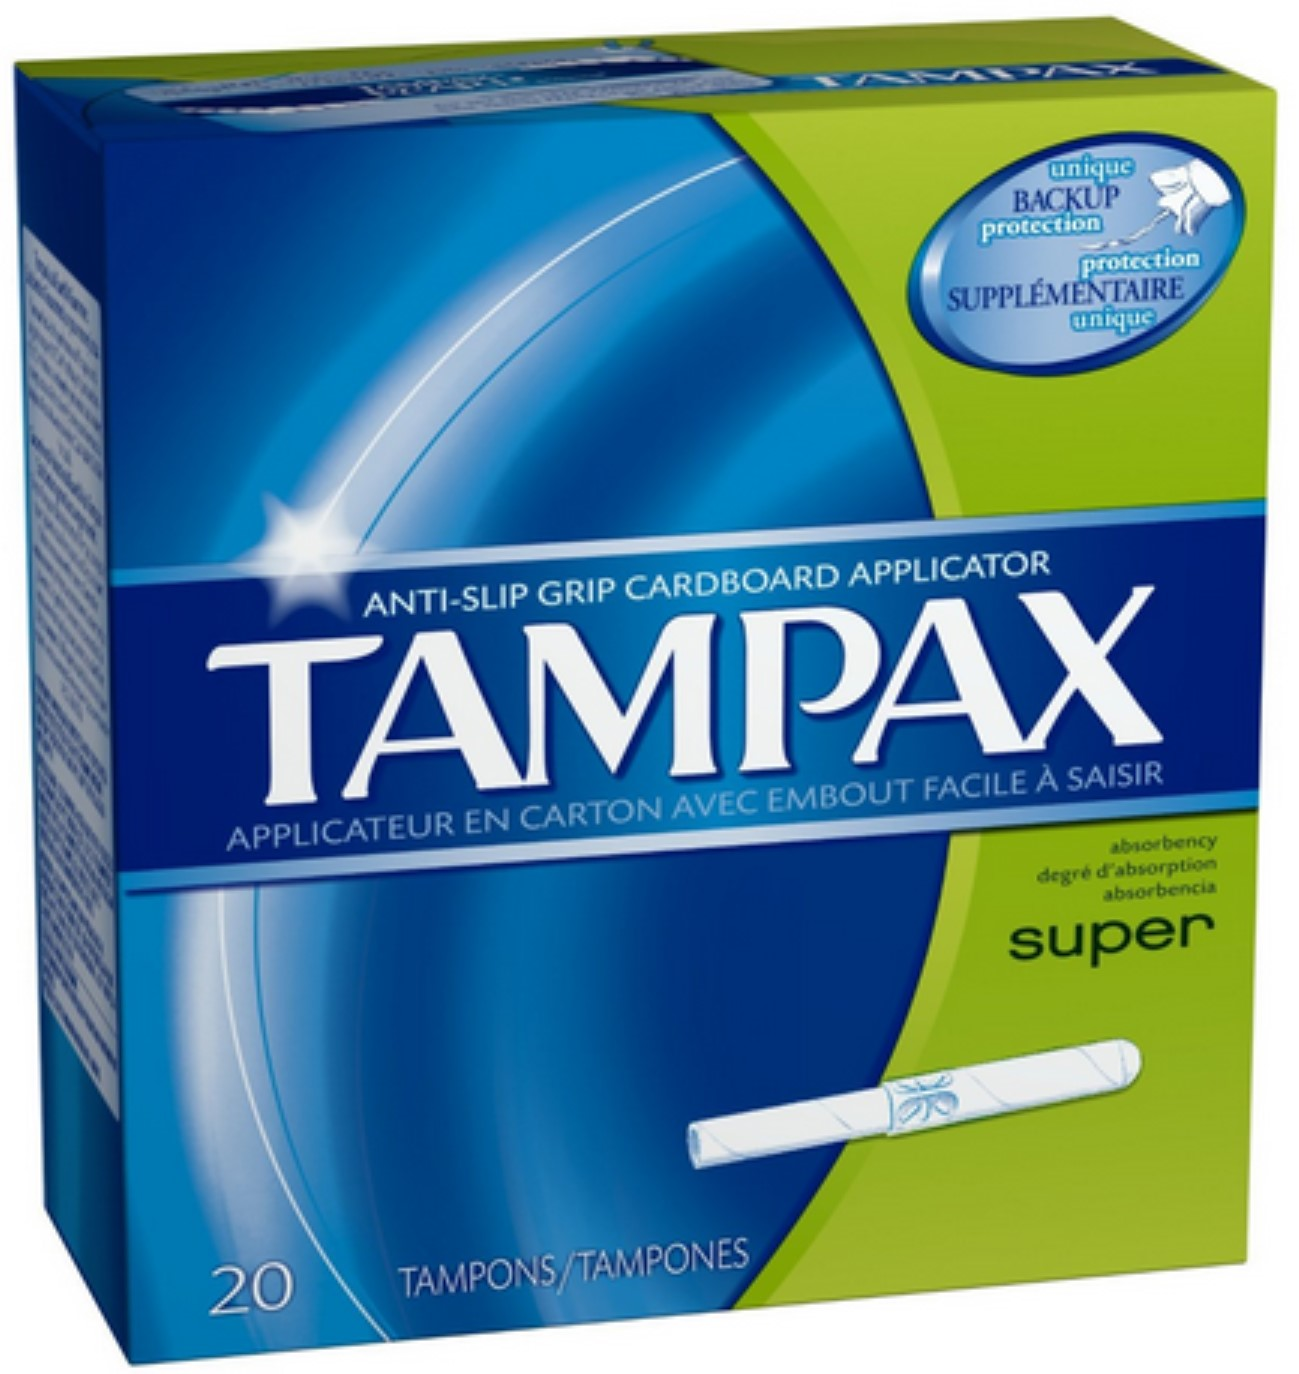 Tampax Tampons Super 20 Each (Pack of 3)